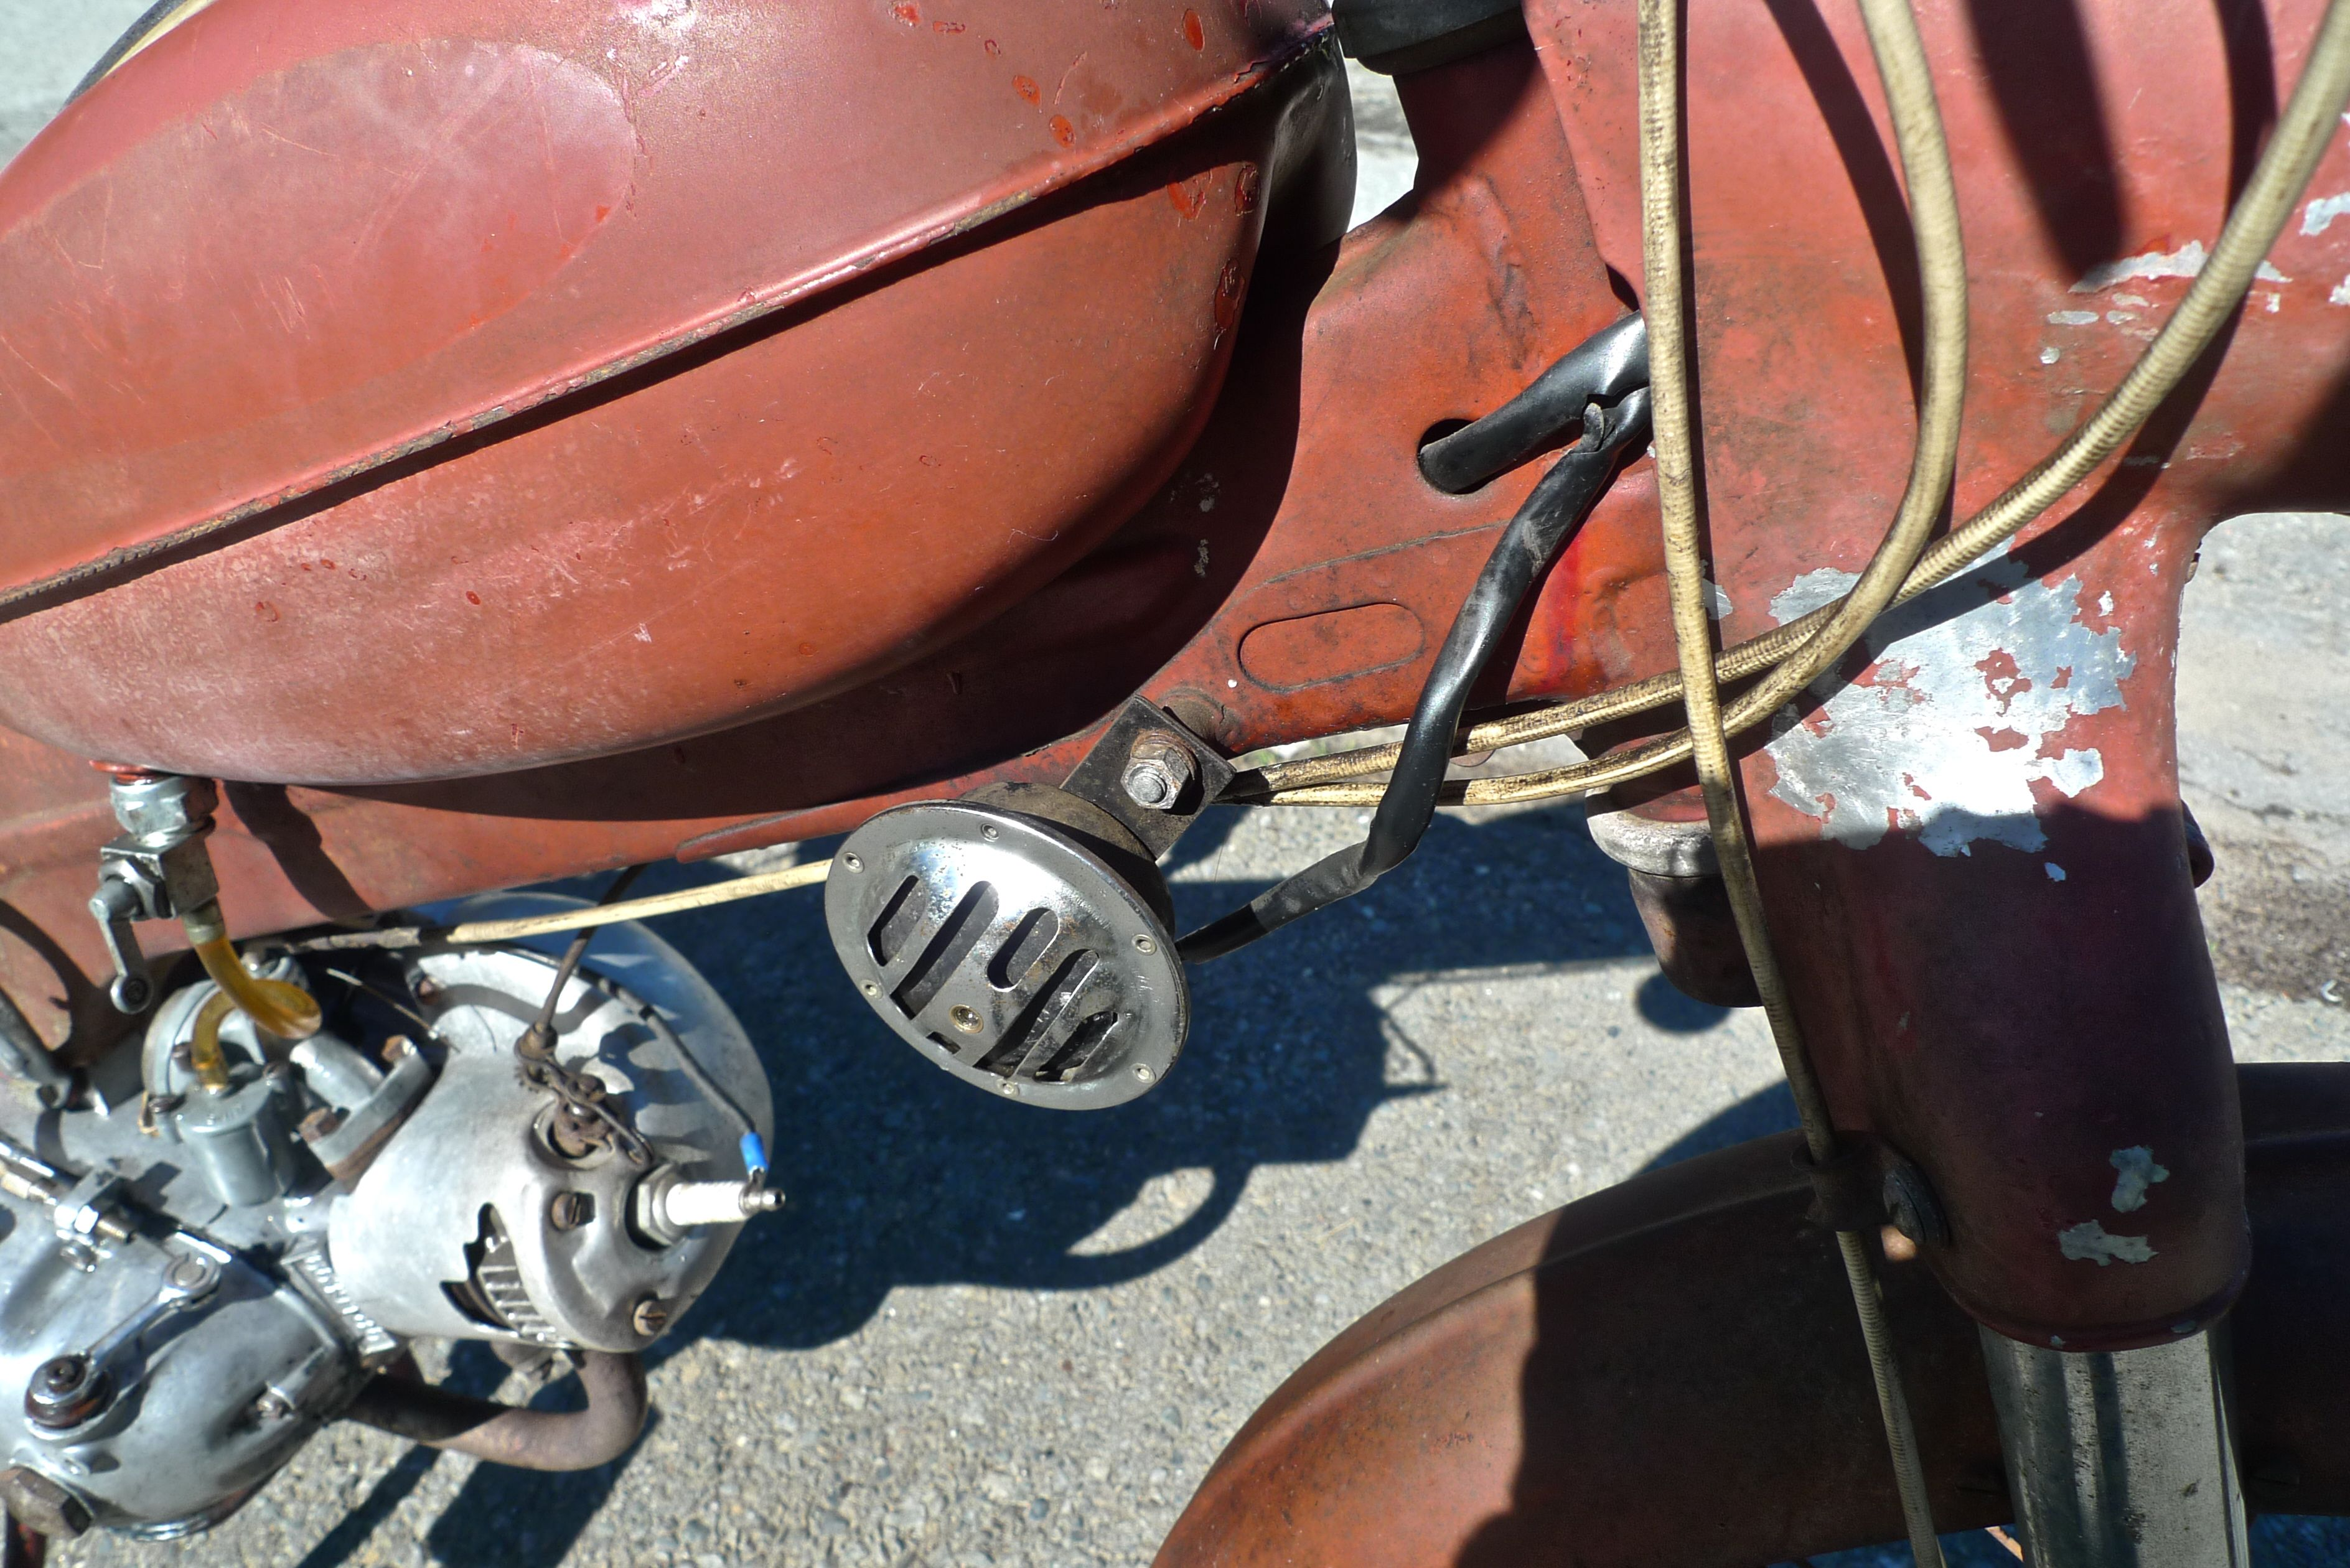 1956 PUCH ALLSTATE MOPED MS50 SOLD | Smashing British Cars